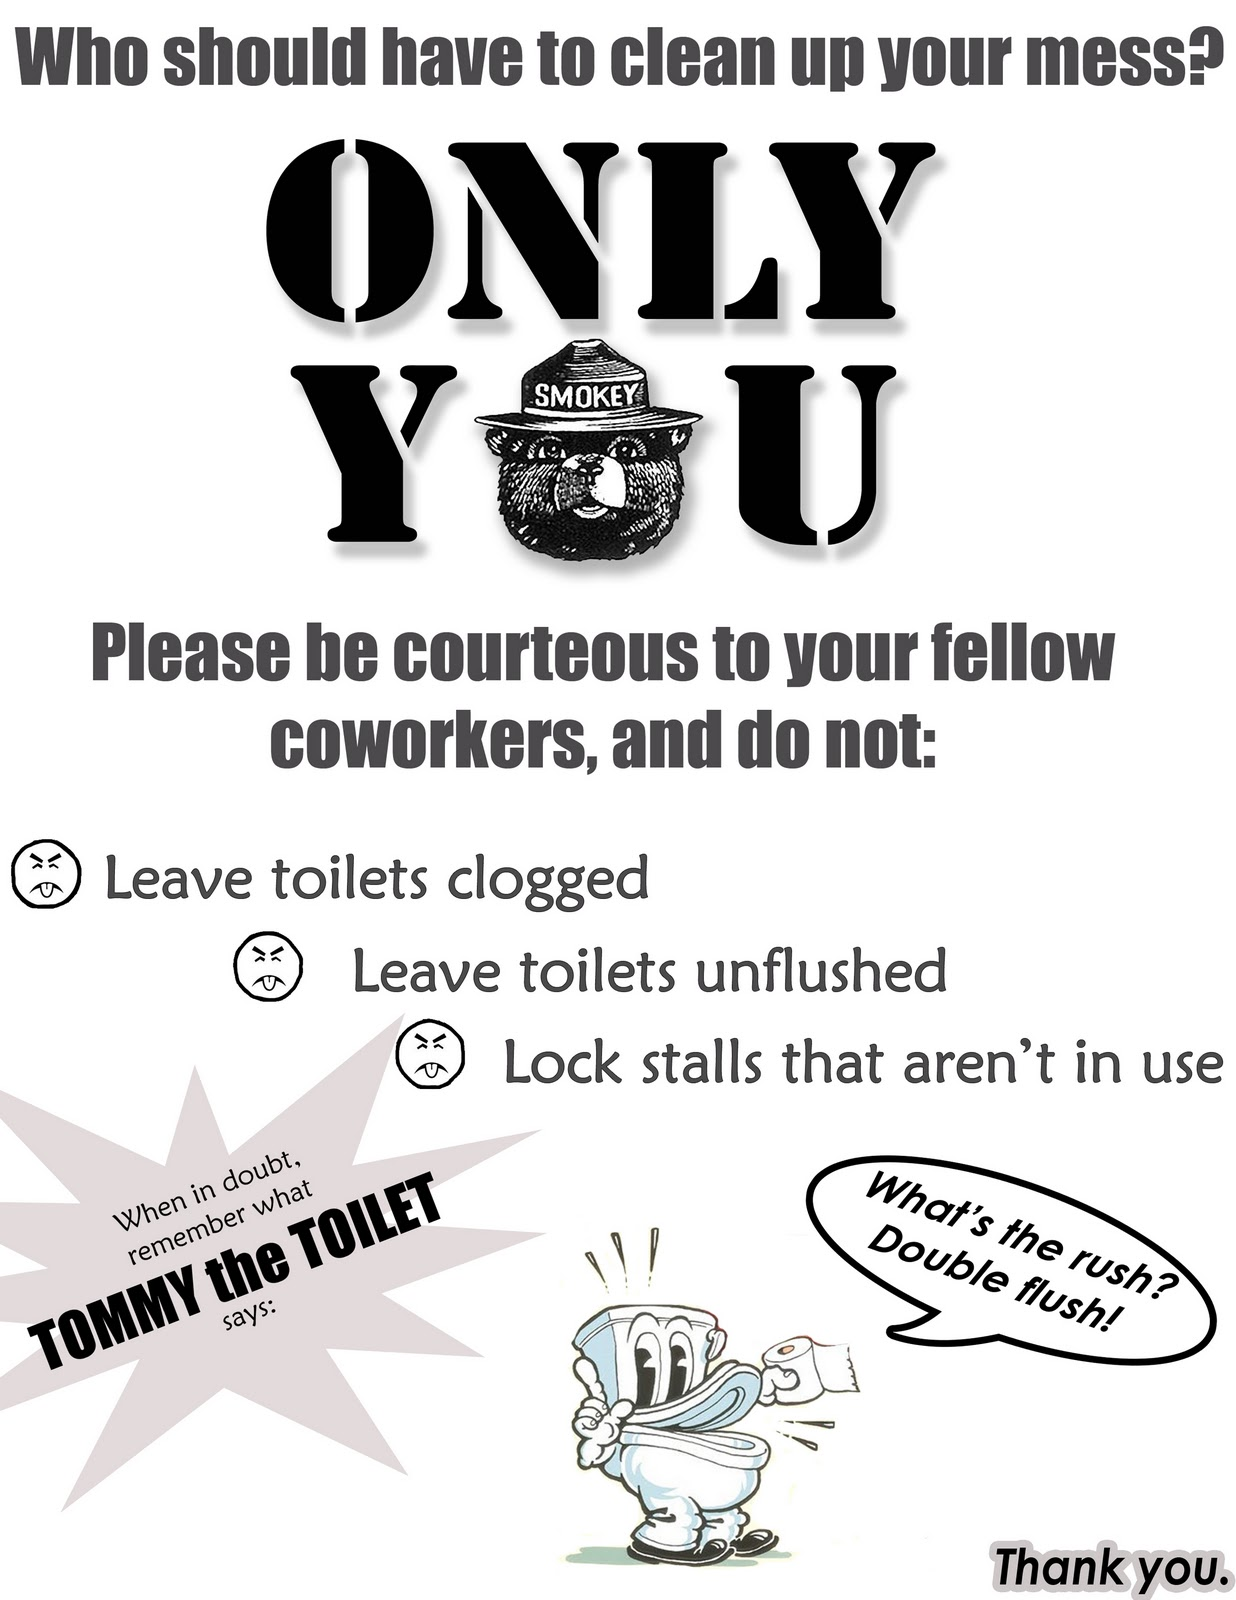 Printable Signs For Bathroom Etiquette In Workplace Just B CAUSE